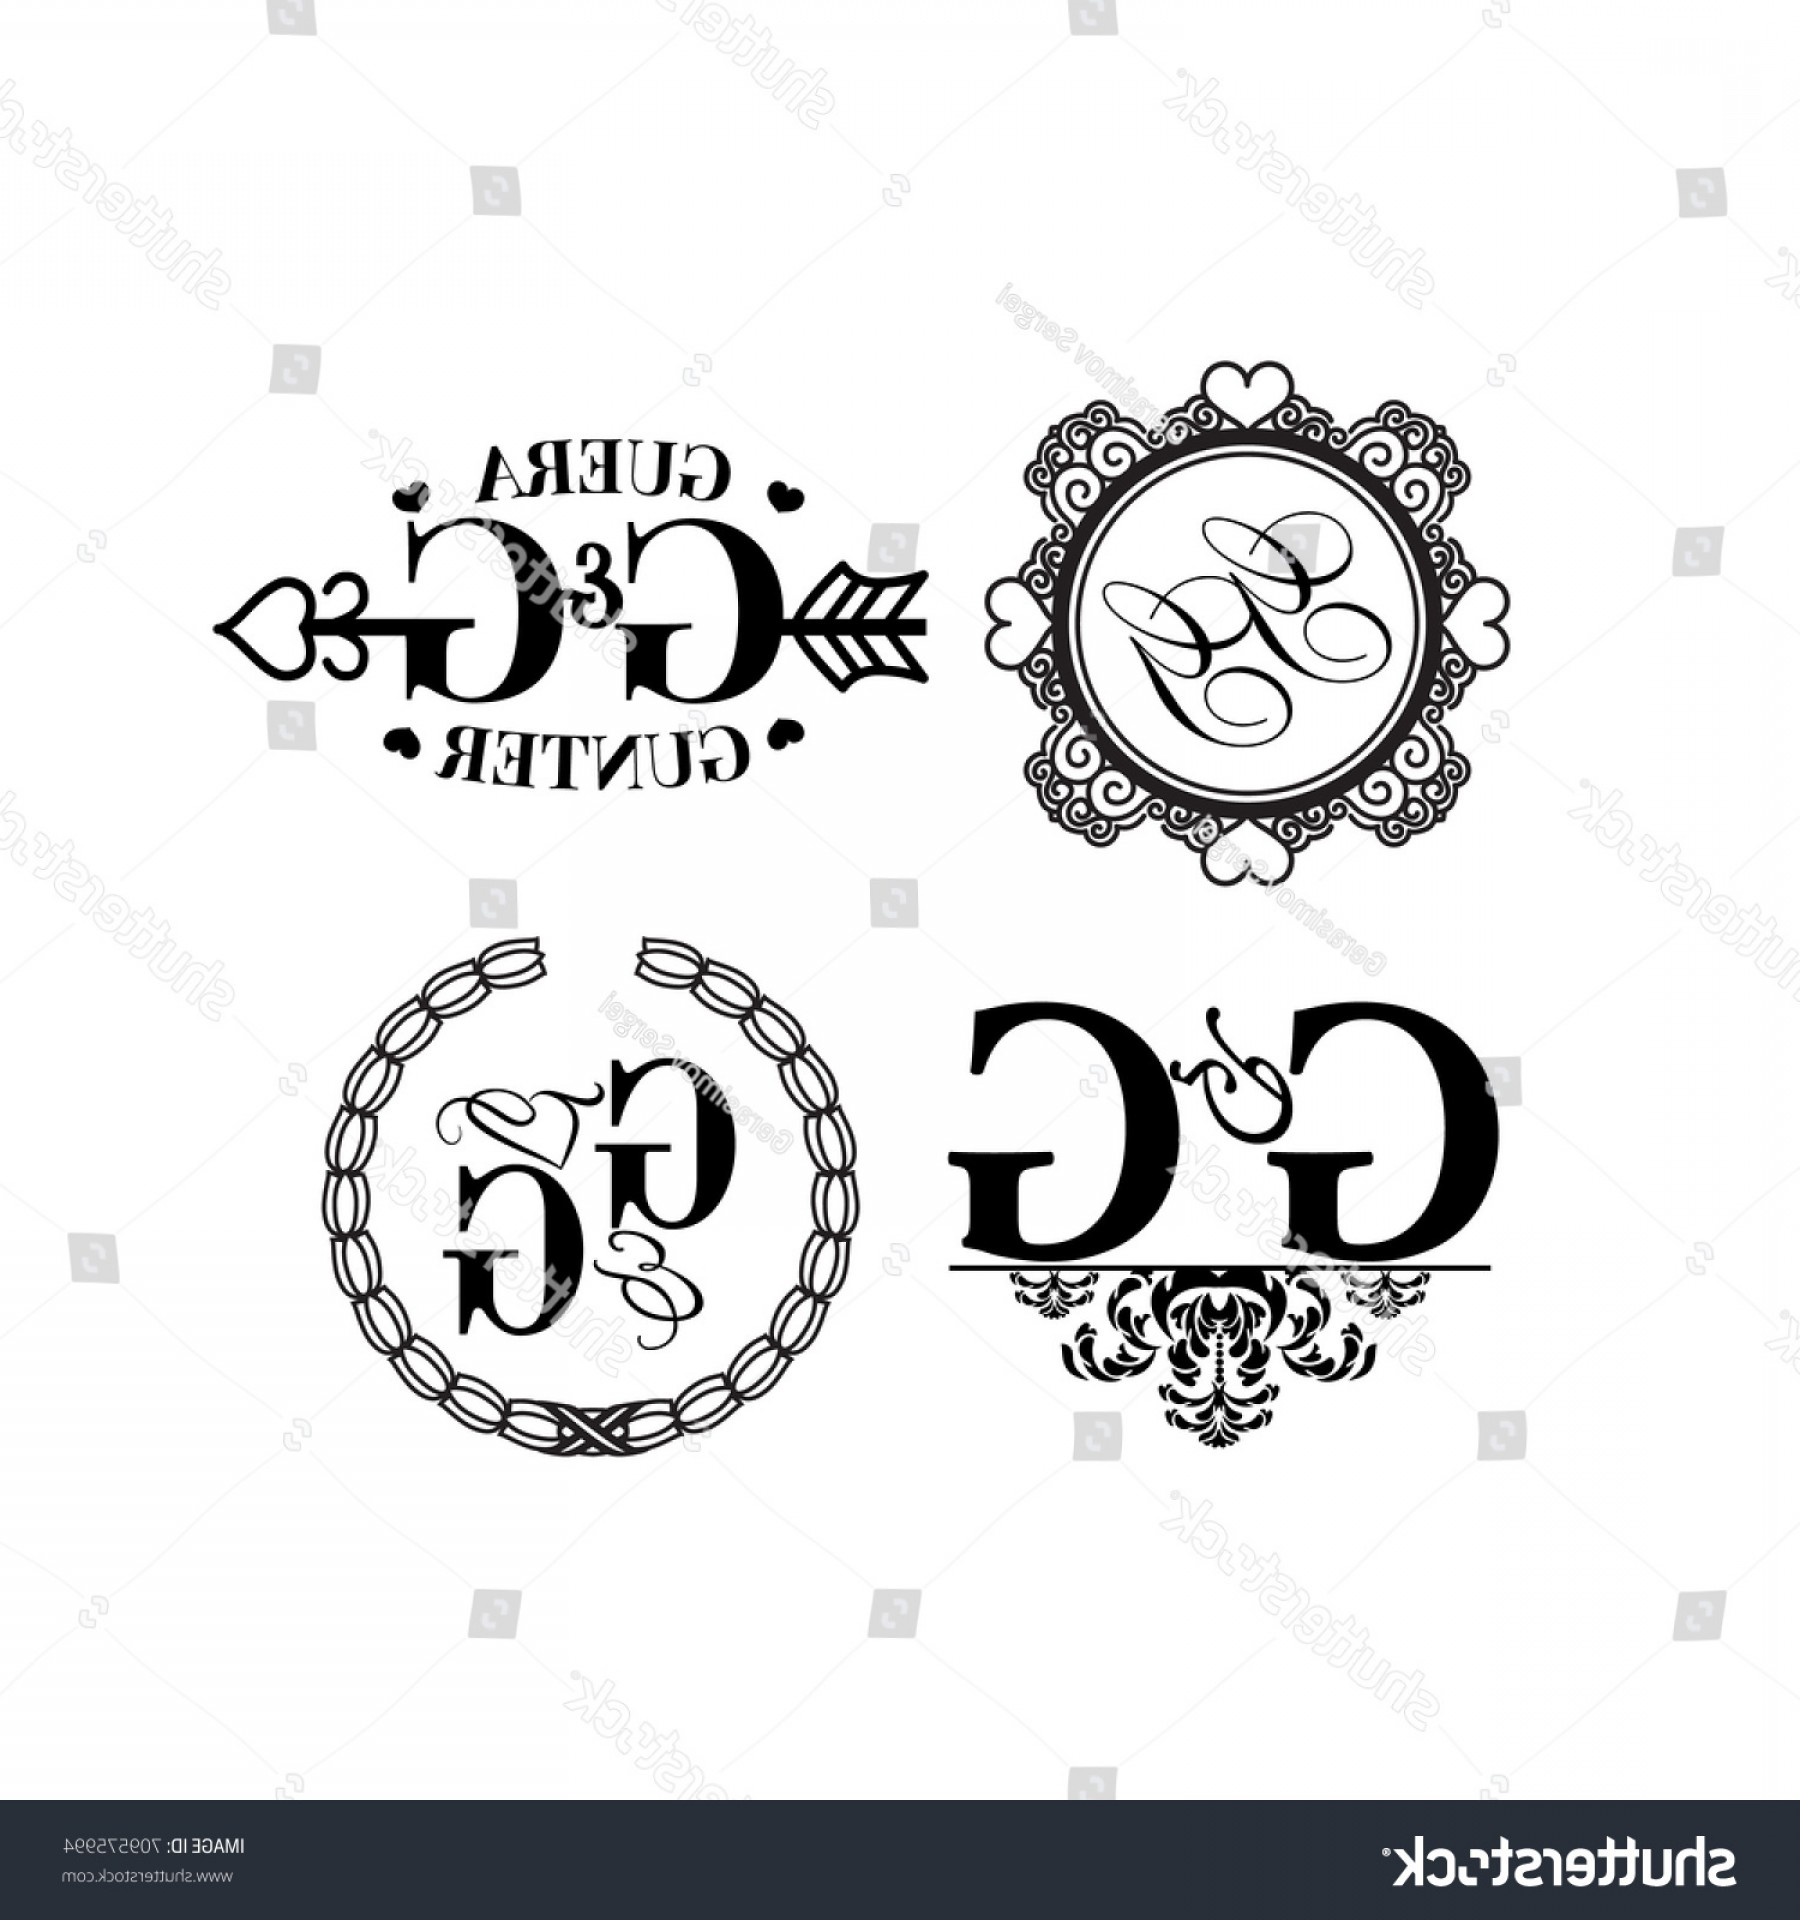 1800x1920 Vector Illustration Wedding Monogram Logo Collection Lazttweet